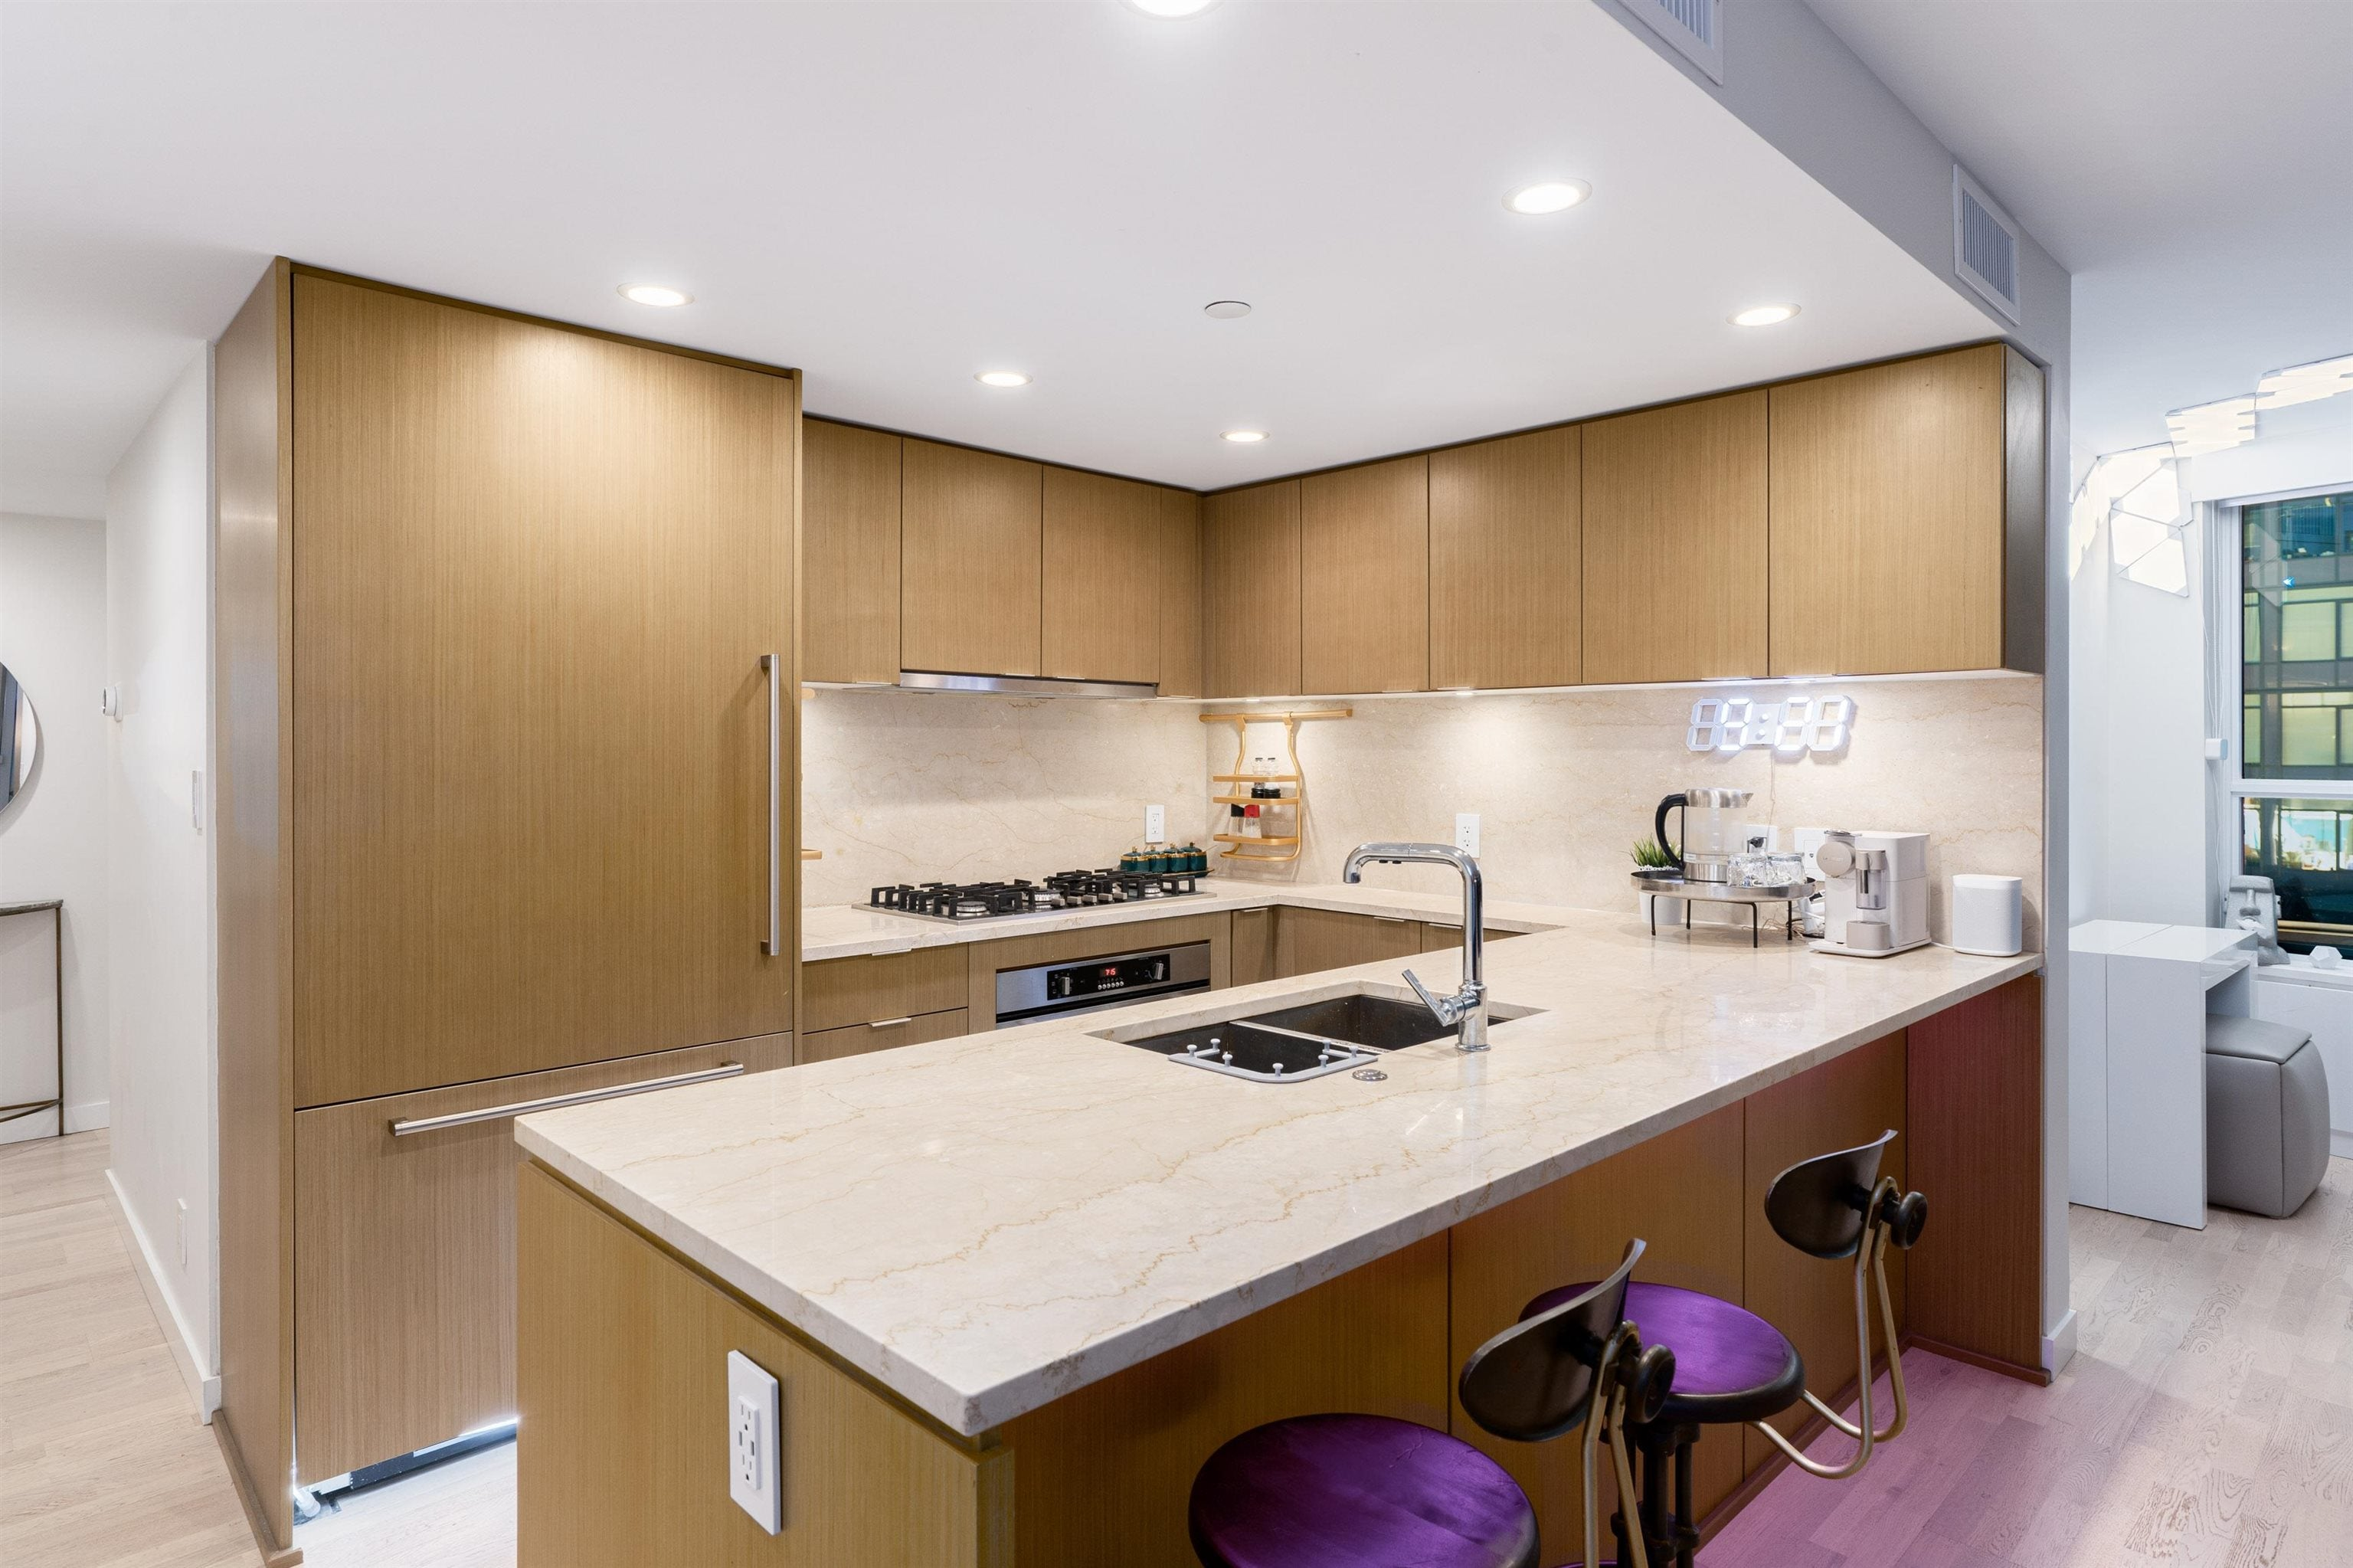 306 112 E 13TH STREET - Central Lonsdale Apartment/Condo for sale, 2 Bedrooms (R2619655) - #14